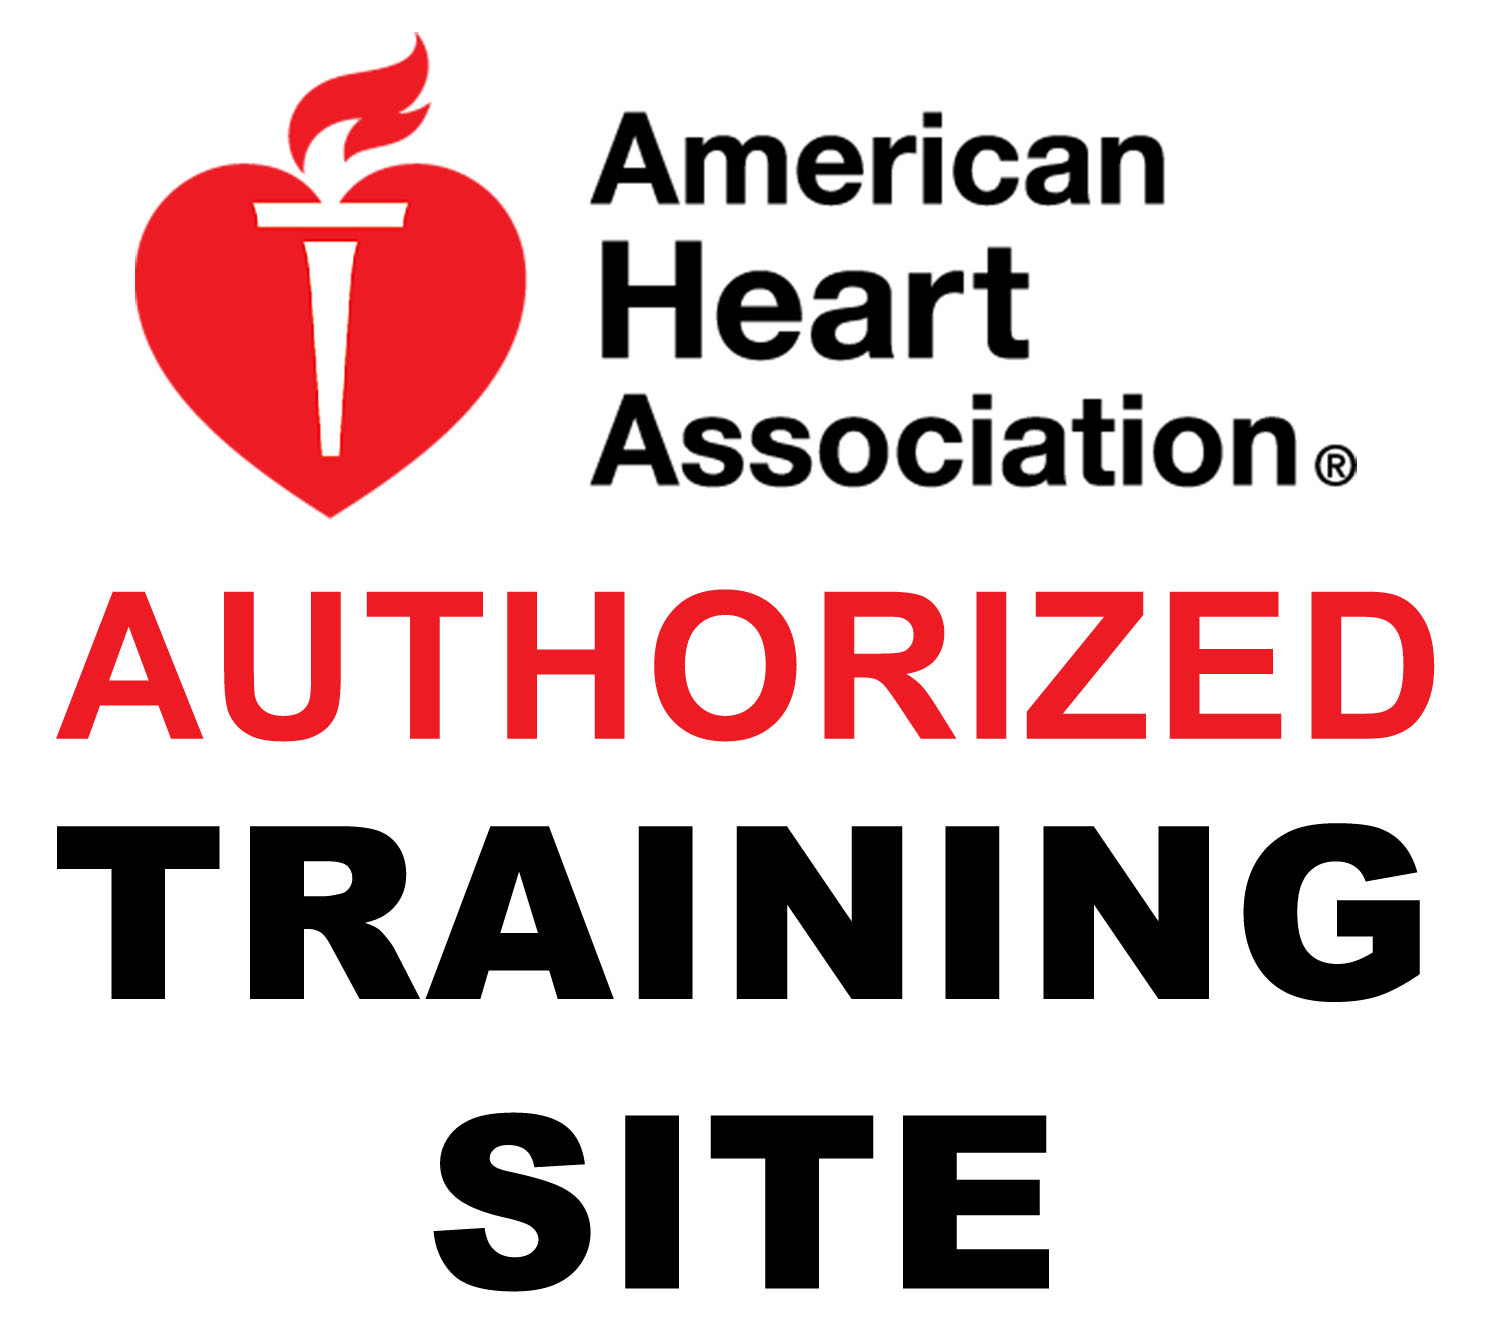 Cpr bls and first aid classes in windsor ca same day certification cards available for most courses 1betcityfo Gallery